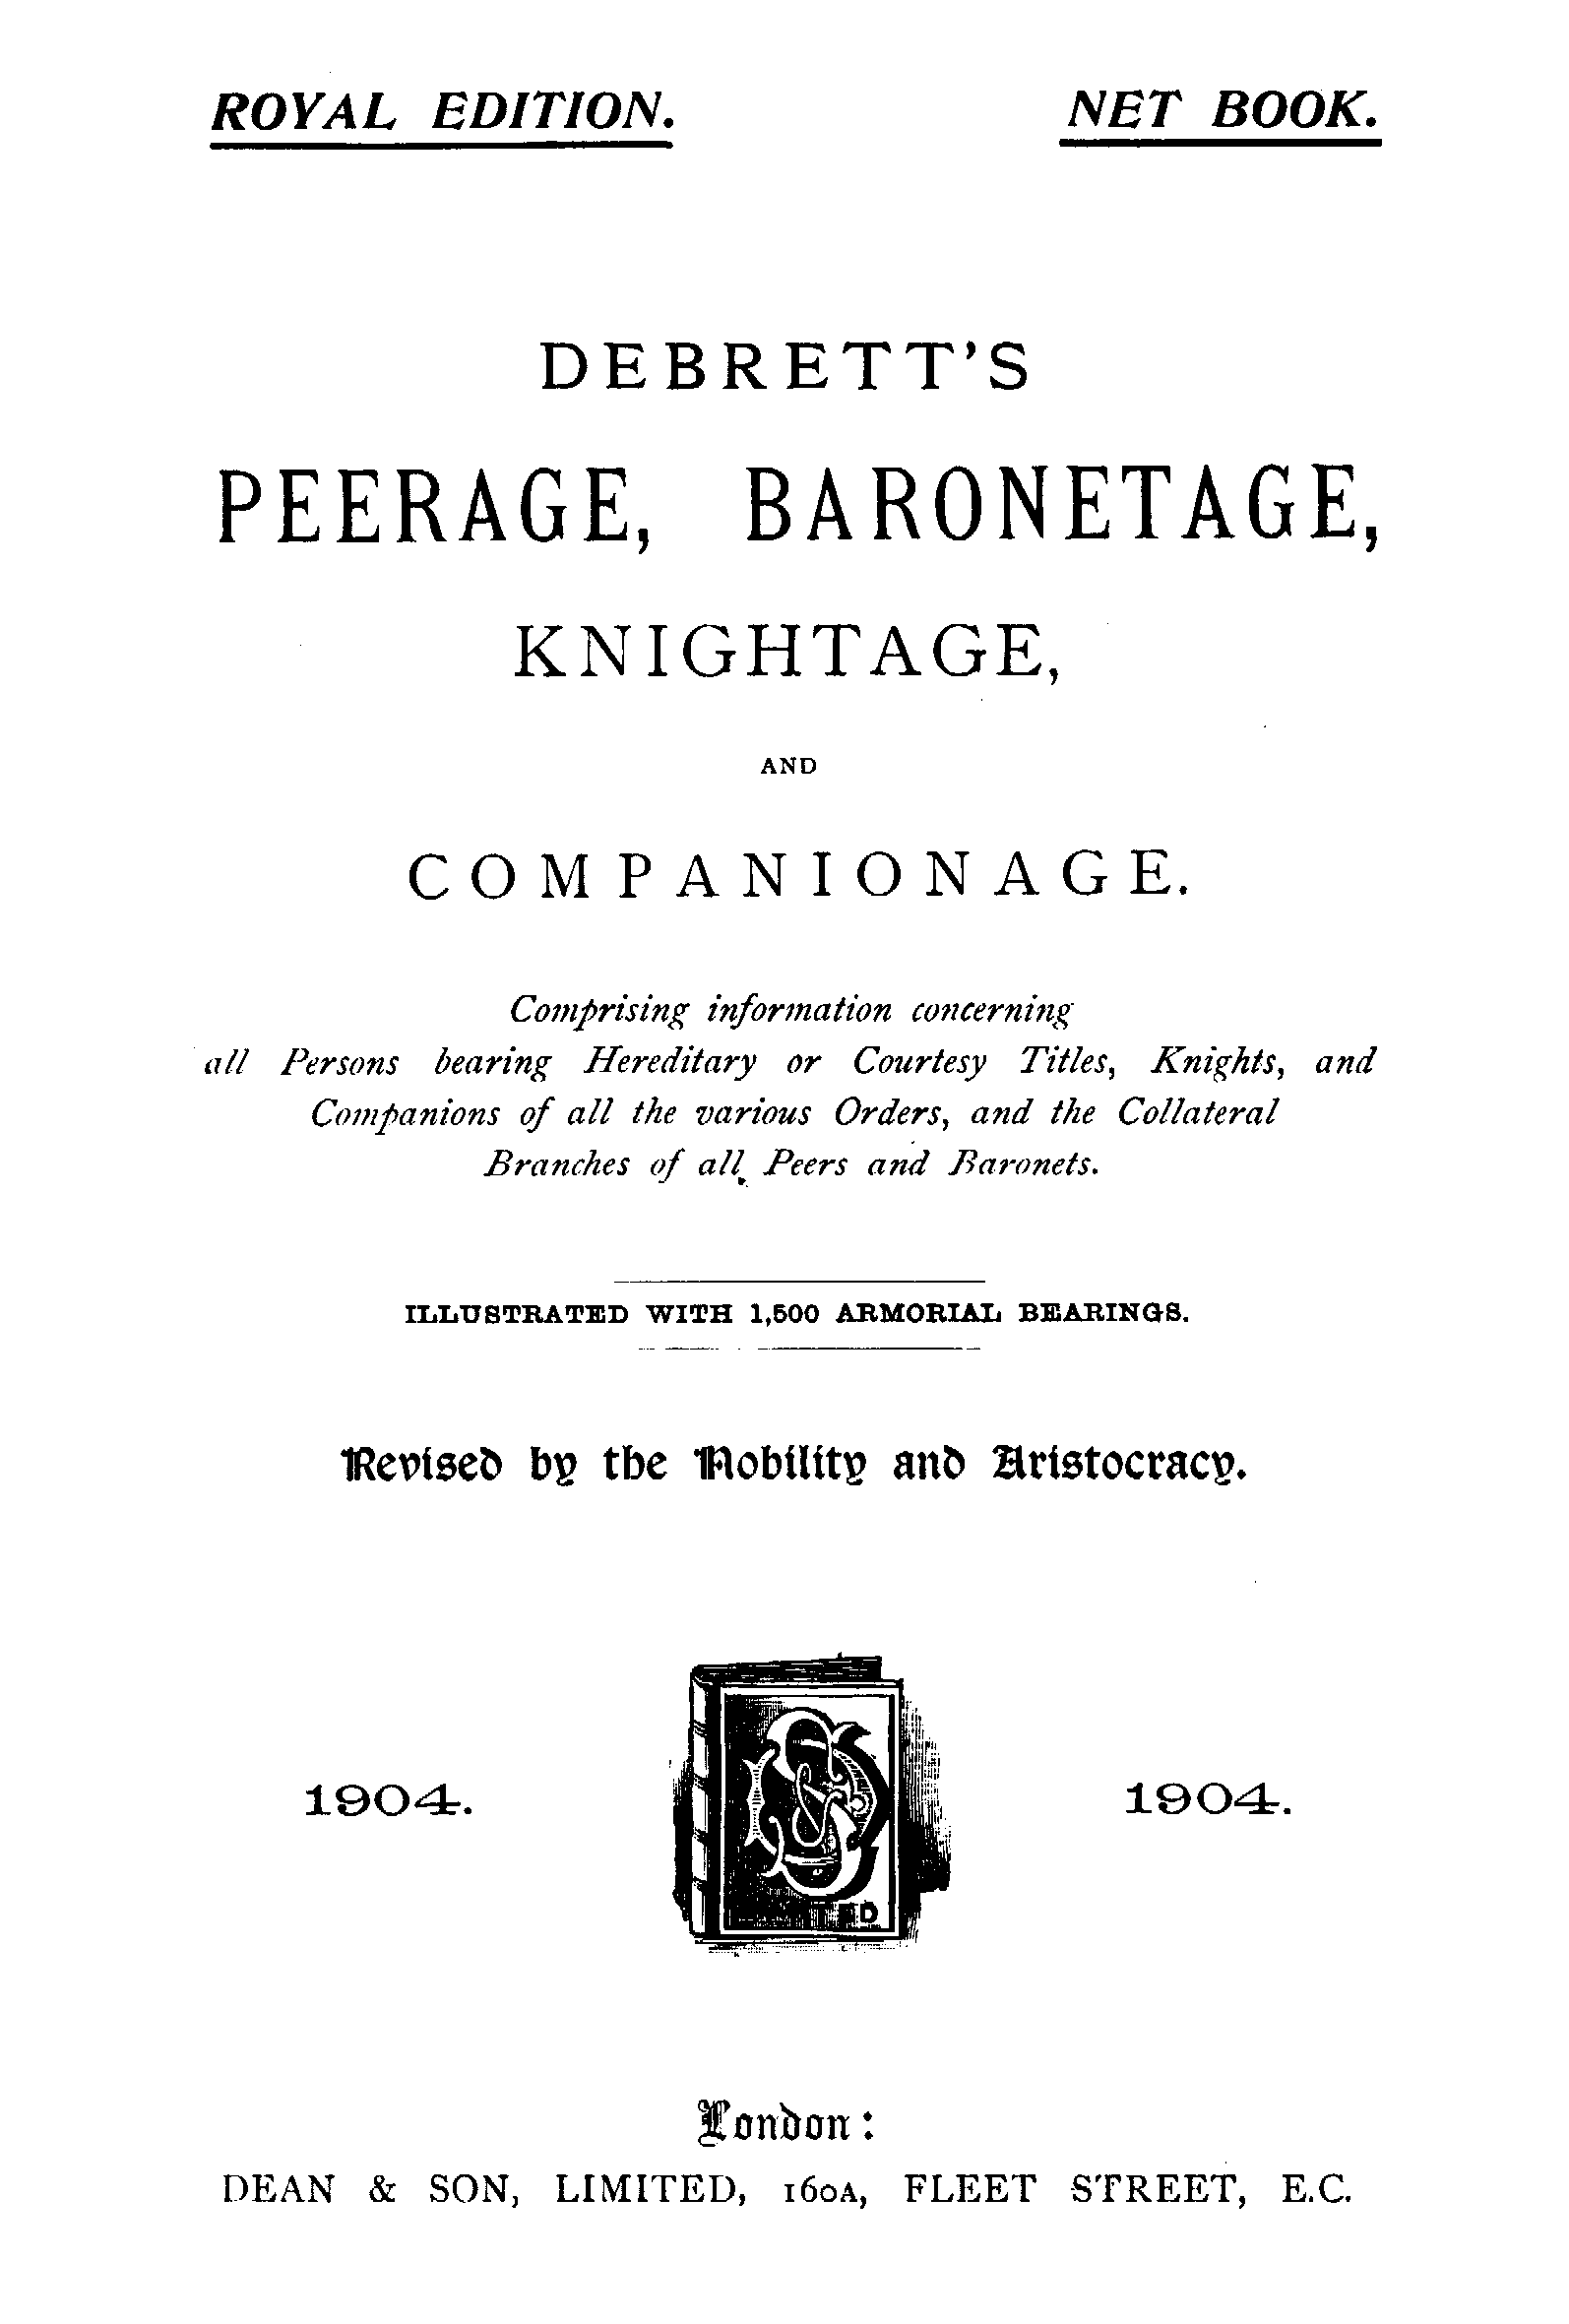 Debrett's Peerage, Baronetage, Knightage and Companionage, 1904 page Title - click to open larger version in a new window